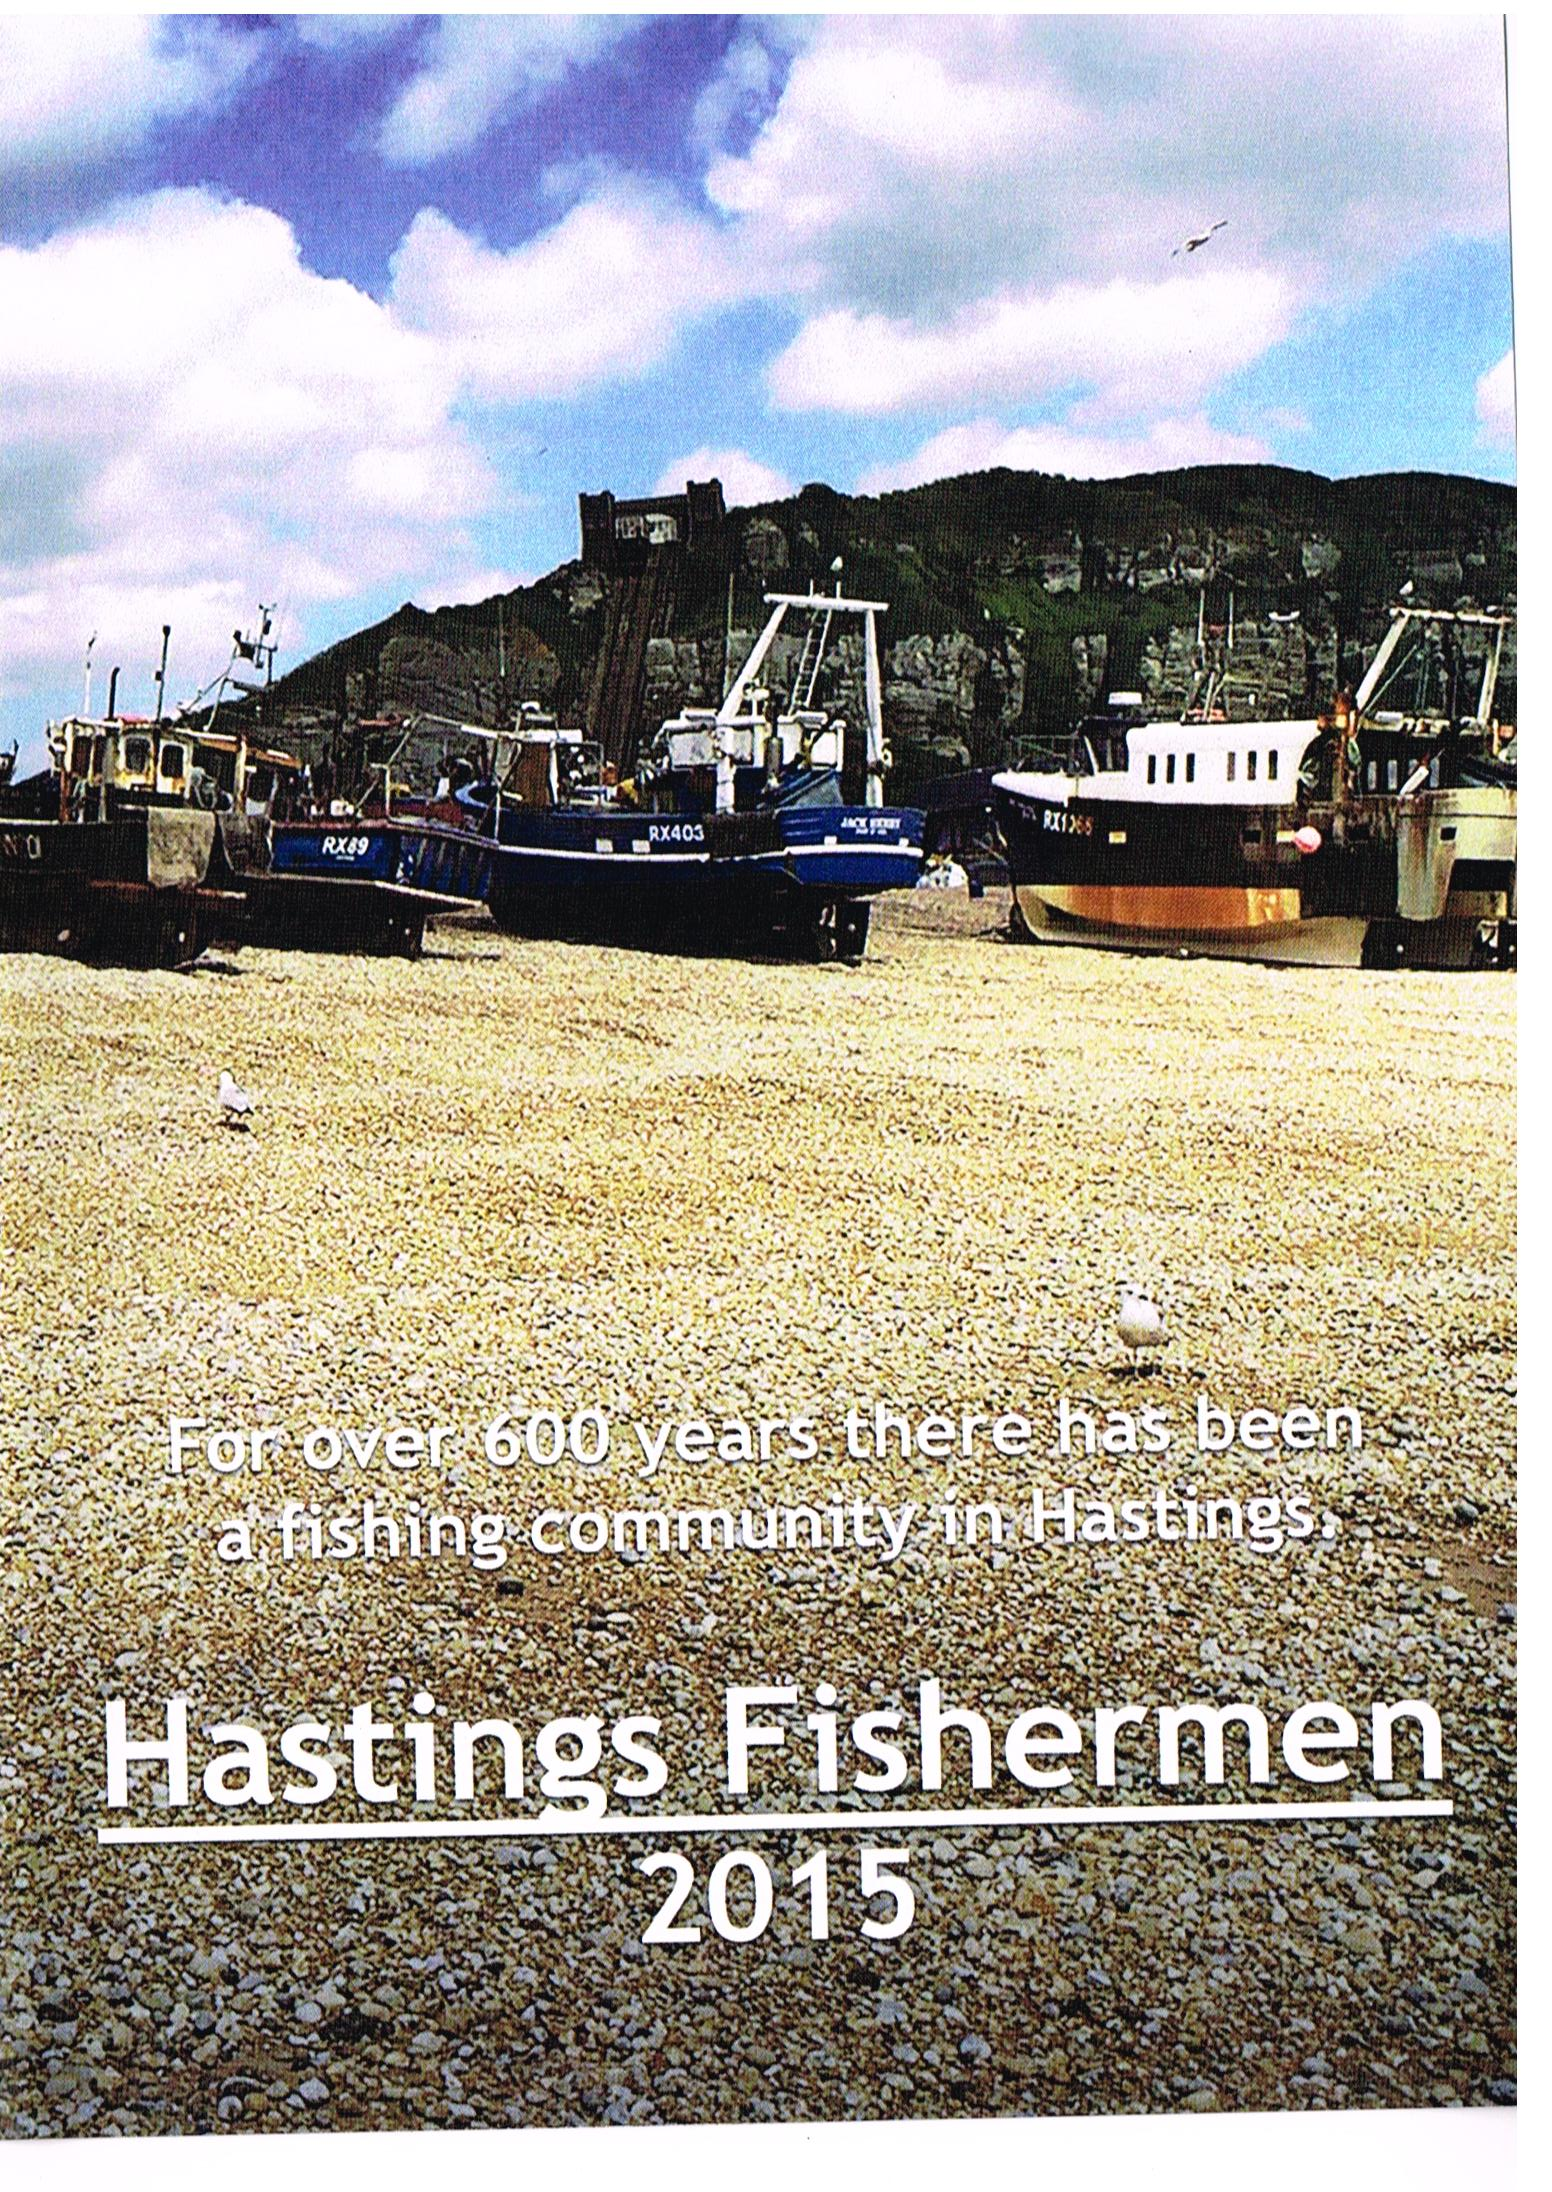 Hastings Fishermen 2015